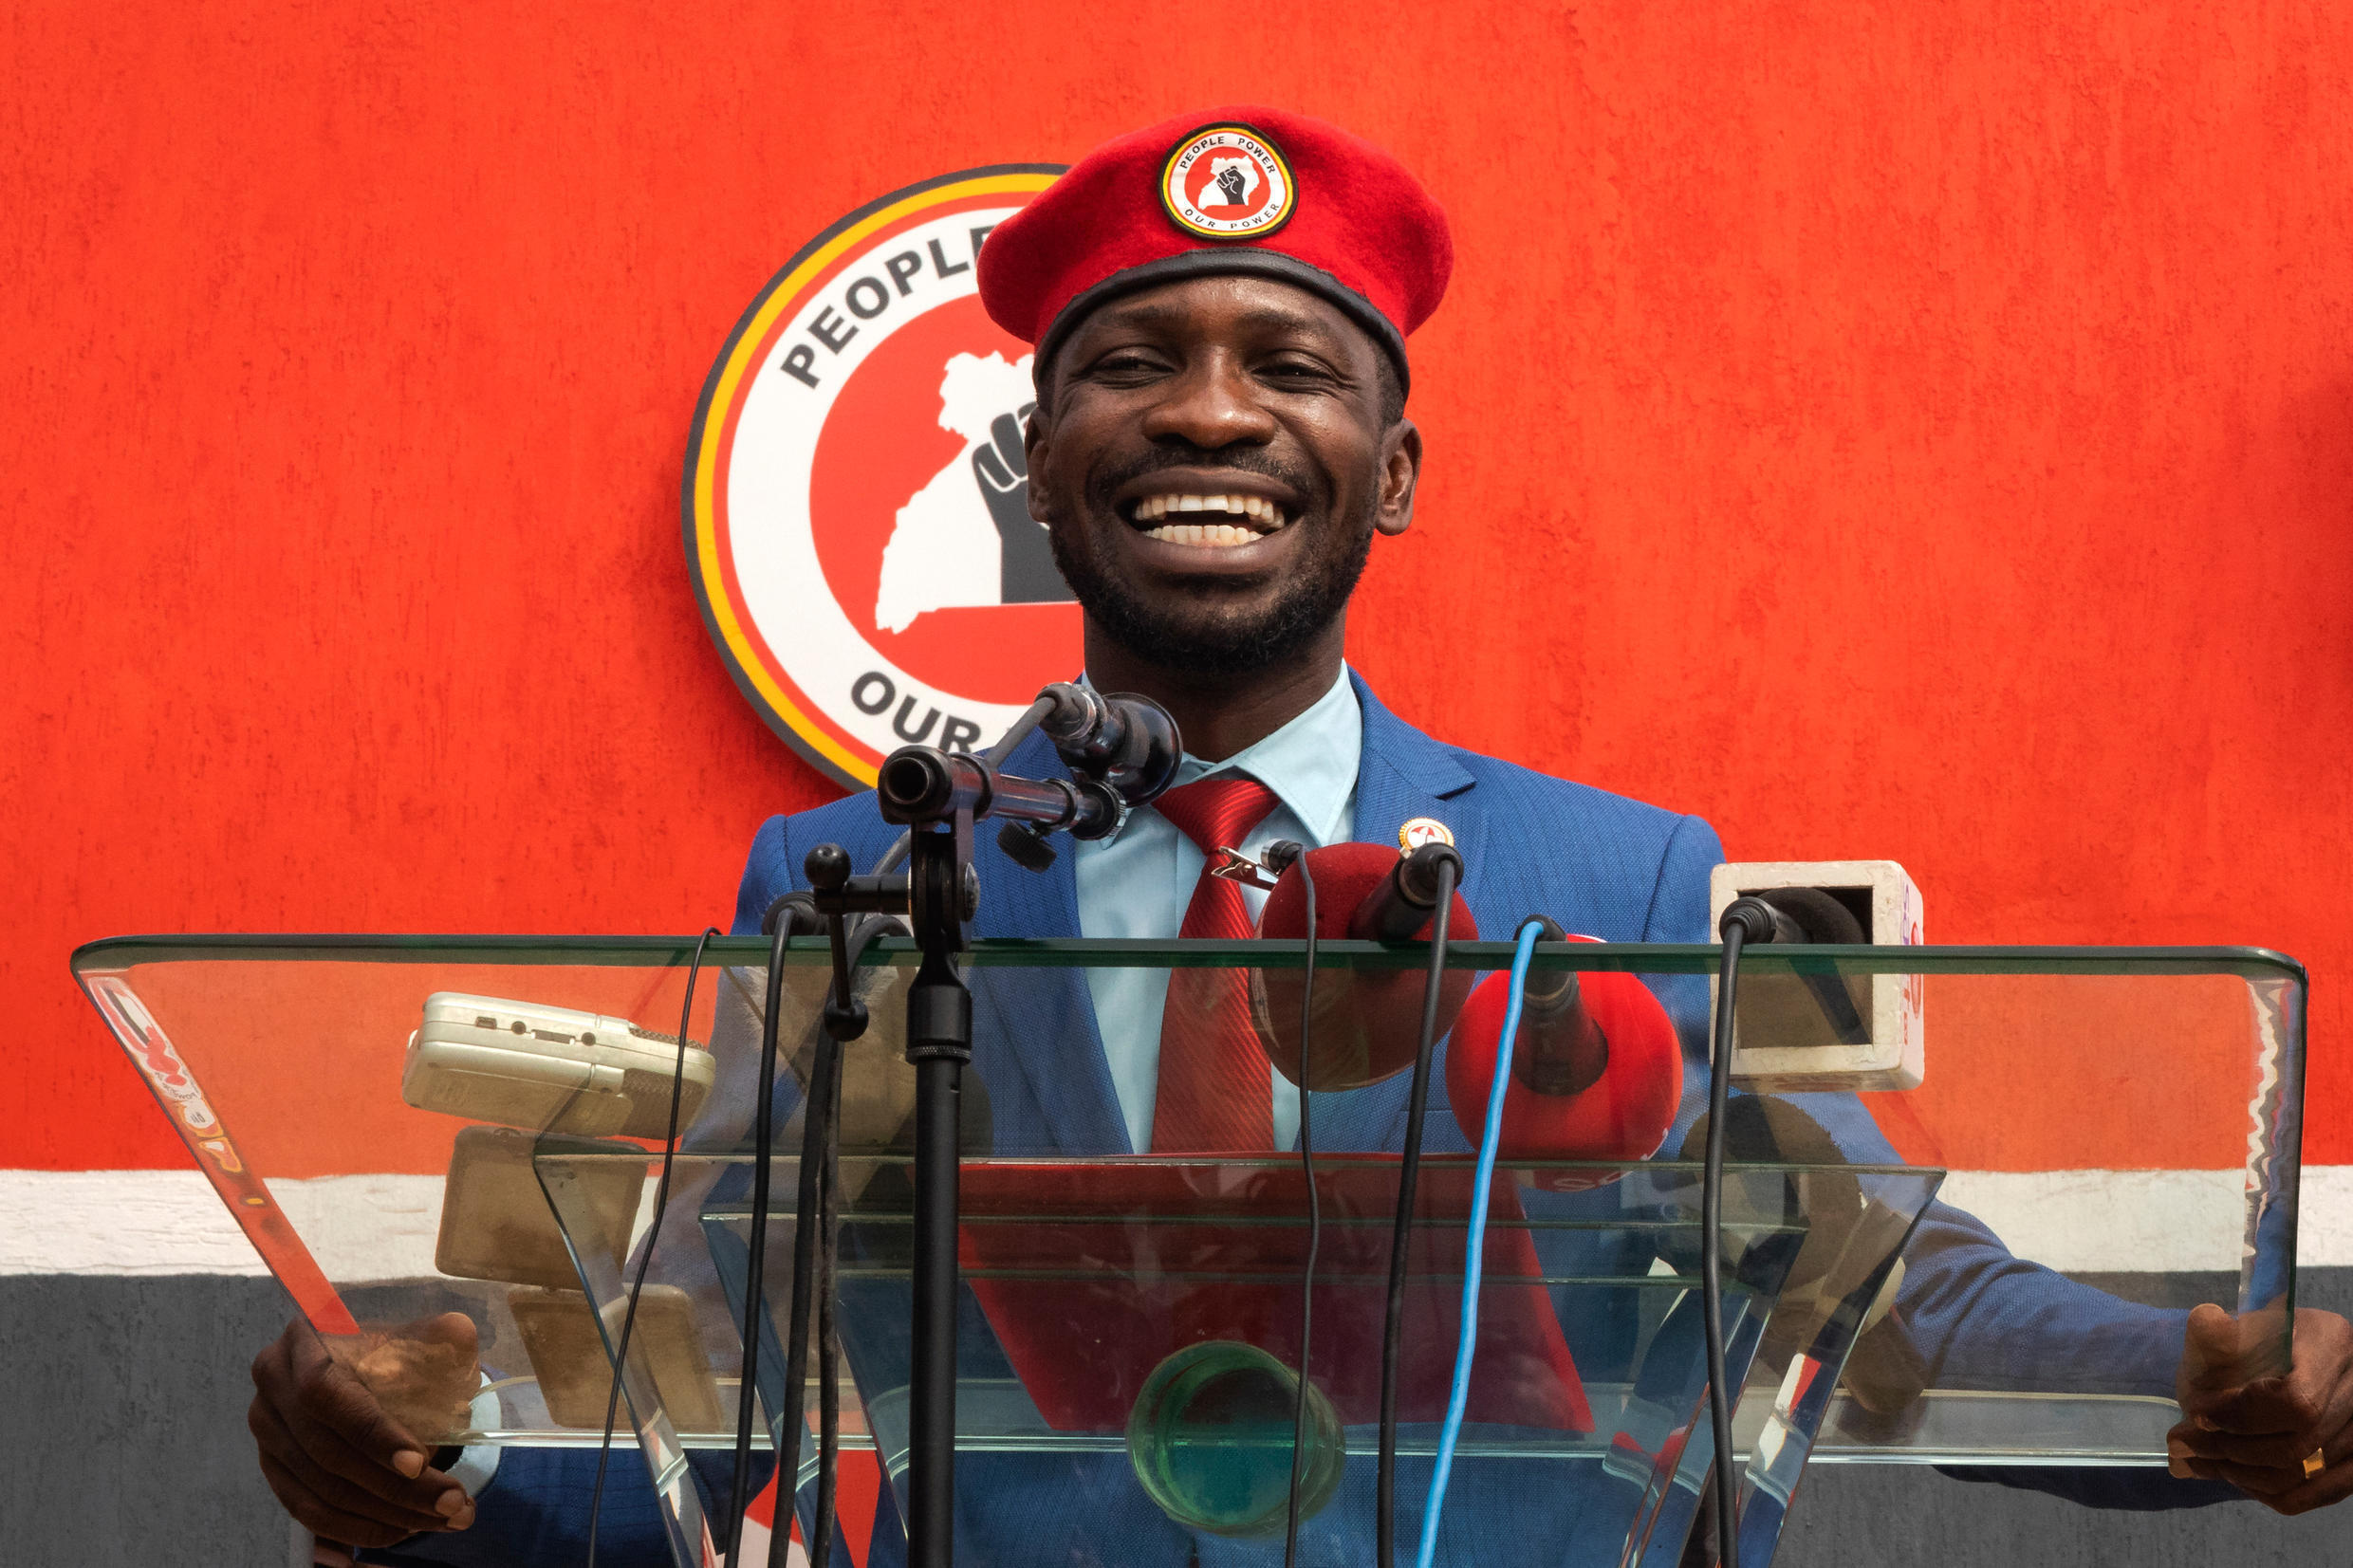 Ugandan singer-turned-politician Bobi Wine has been arrested numerous times in recent years